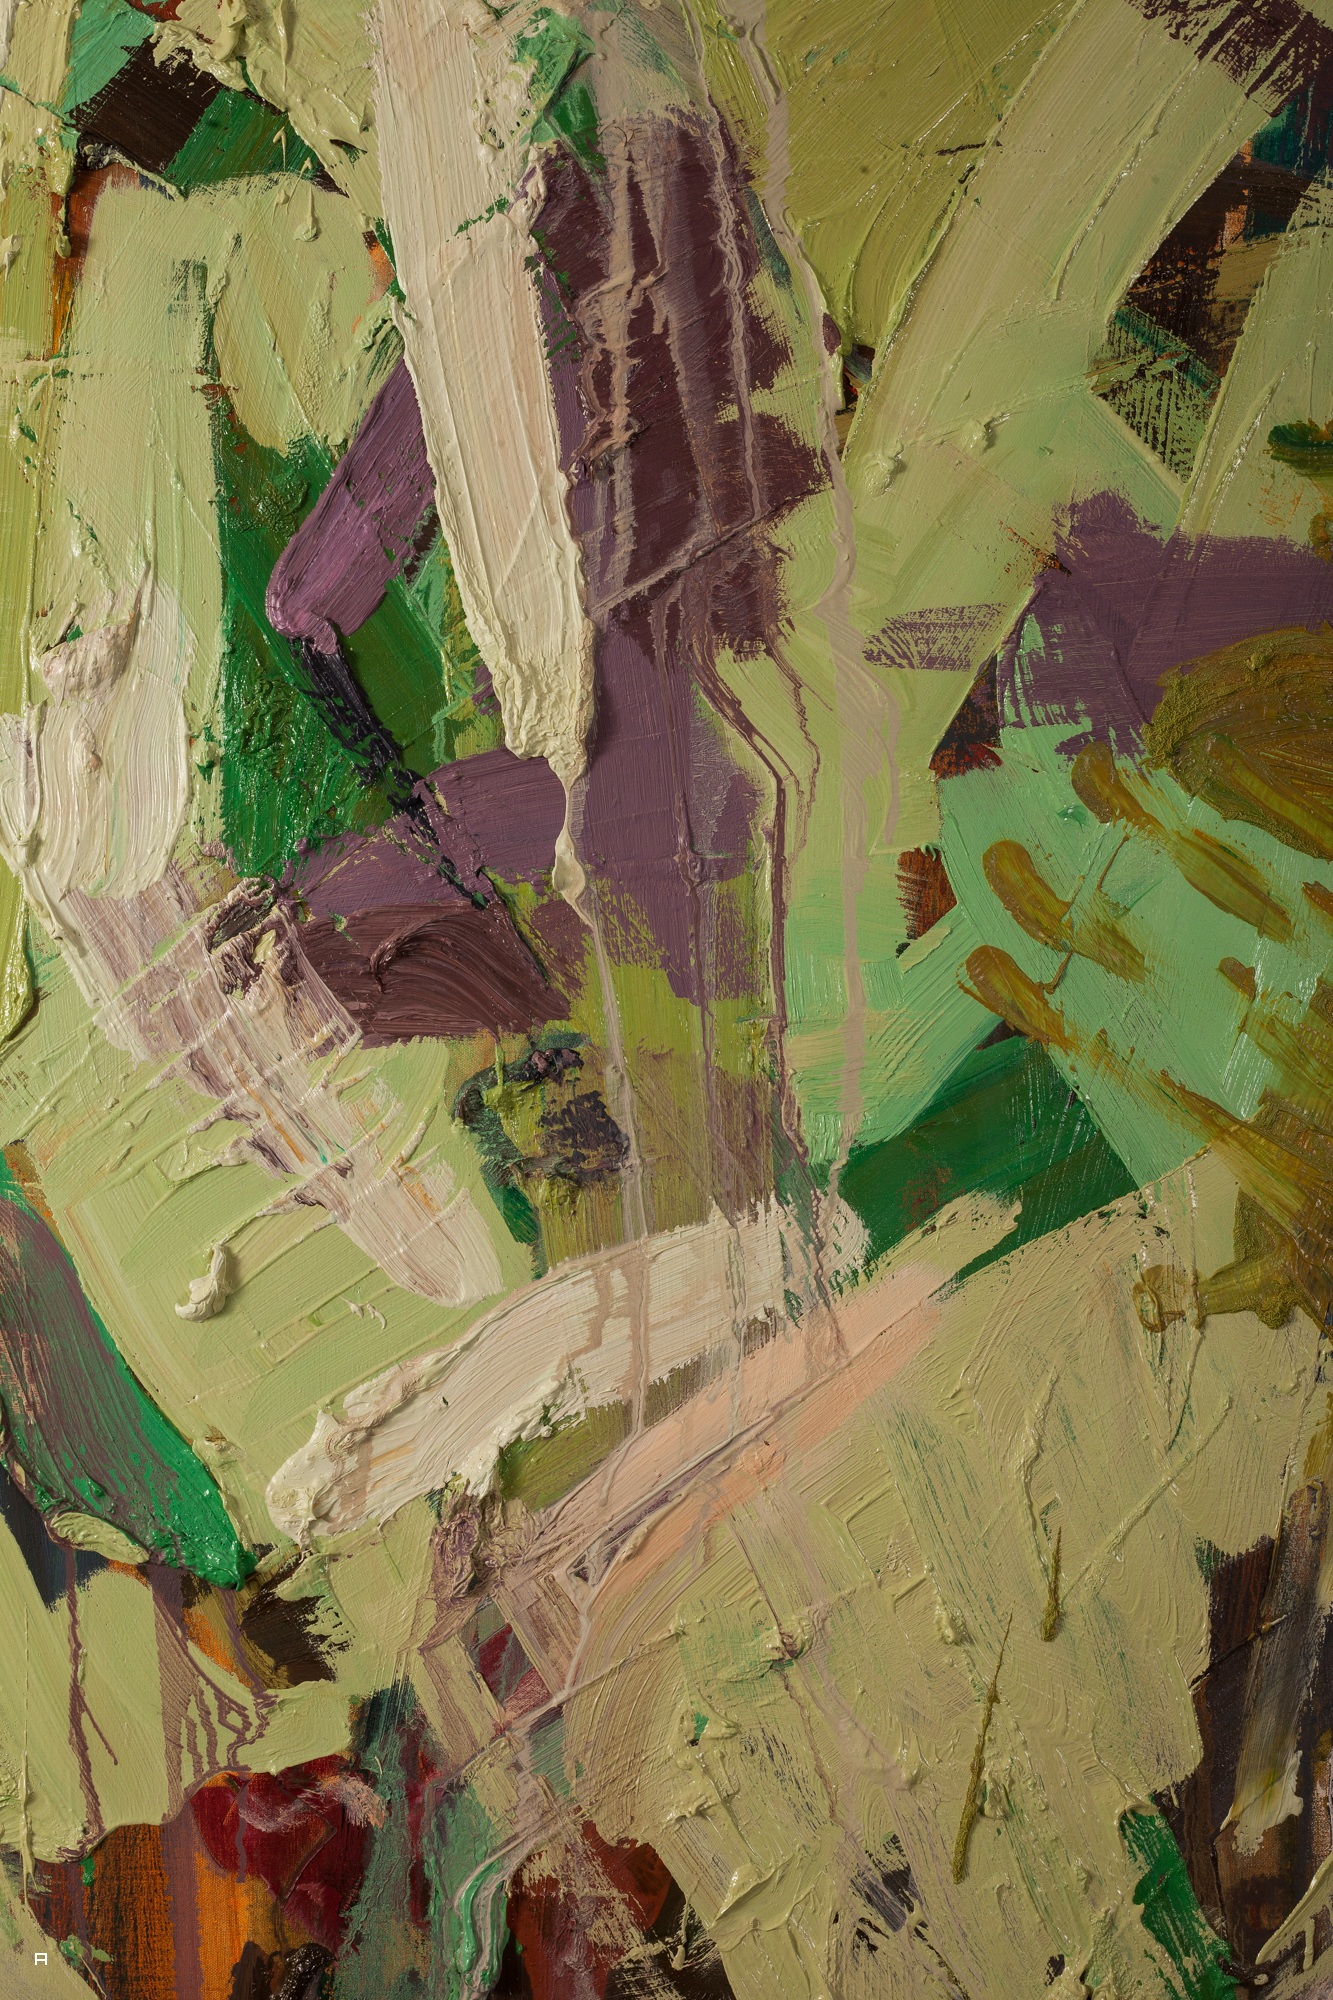 Flaying (detail), Oil on canvas, 160x100 cm, 2016